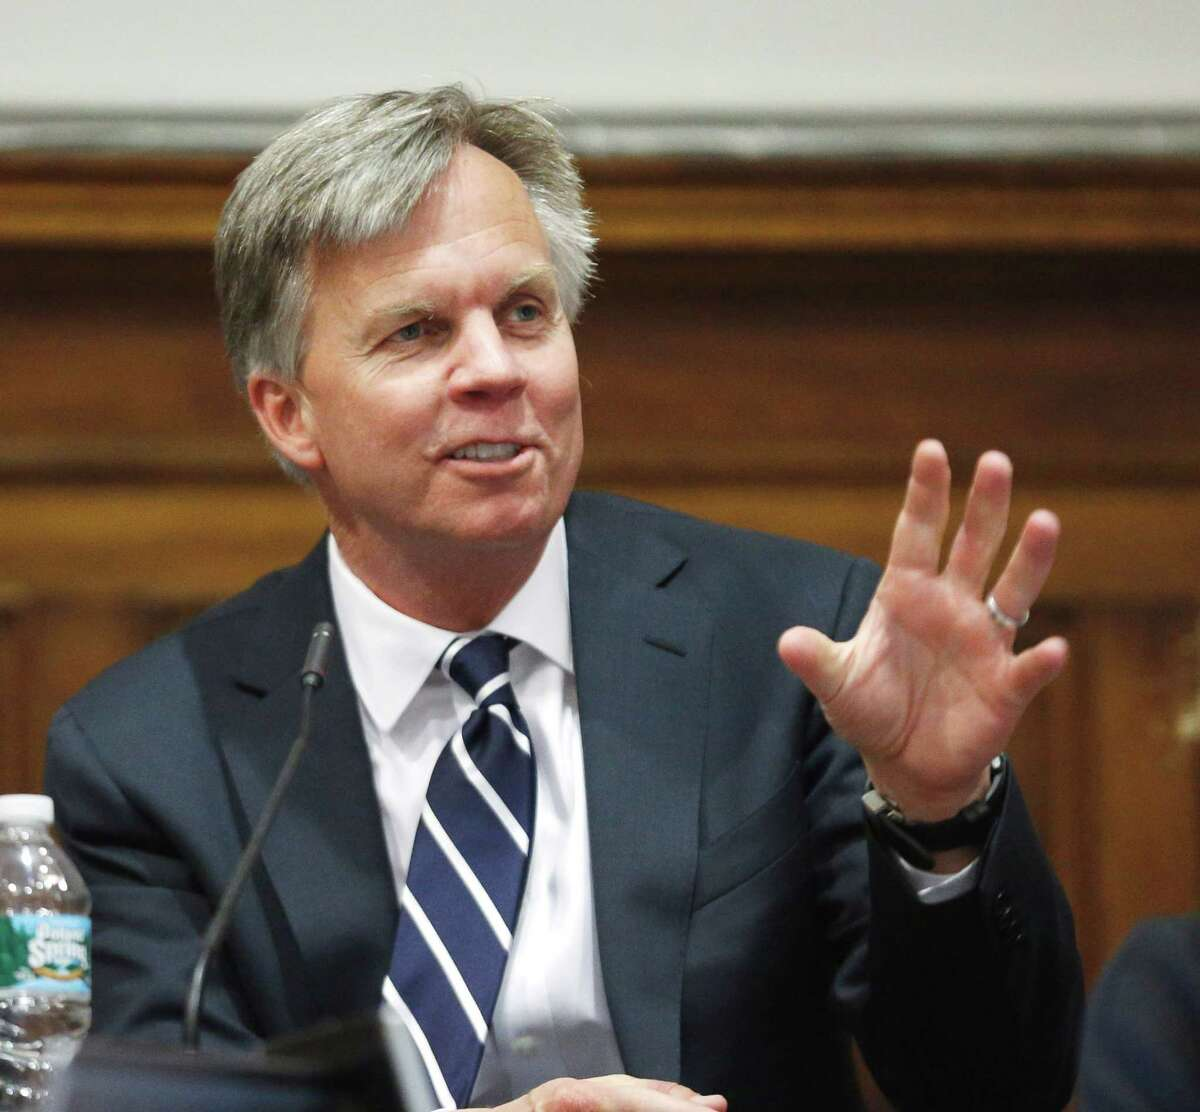 J.C. Penney Chief Executive Officer Ron Johnson gestures from the witness stand at State Supreme Court in New York, Friday, March 1, 2013. The retailer is locked in a legal battle with against rival Macy's Inc. over a partnership with domestic diva Martha Stewart. The trial, which began Feb. 20, focuses on whether Macy's has the exclusive right to sell some of Martha Stewart branded products such as cookware, bedding and bath items. (AP Photo/Thomas Iannaccone, Pool)